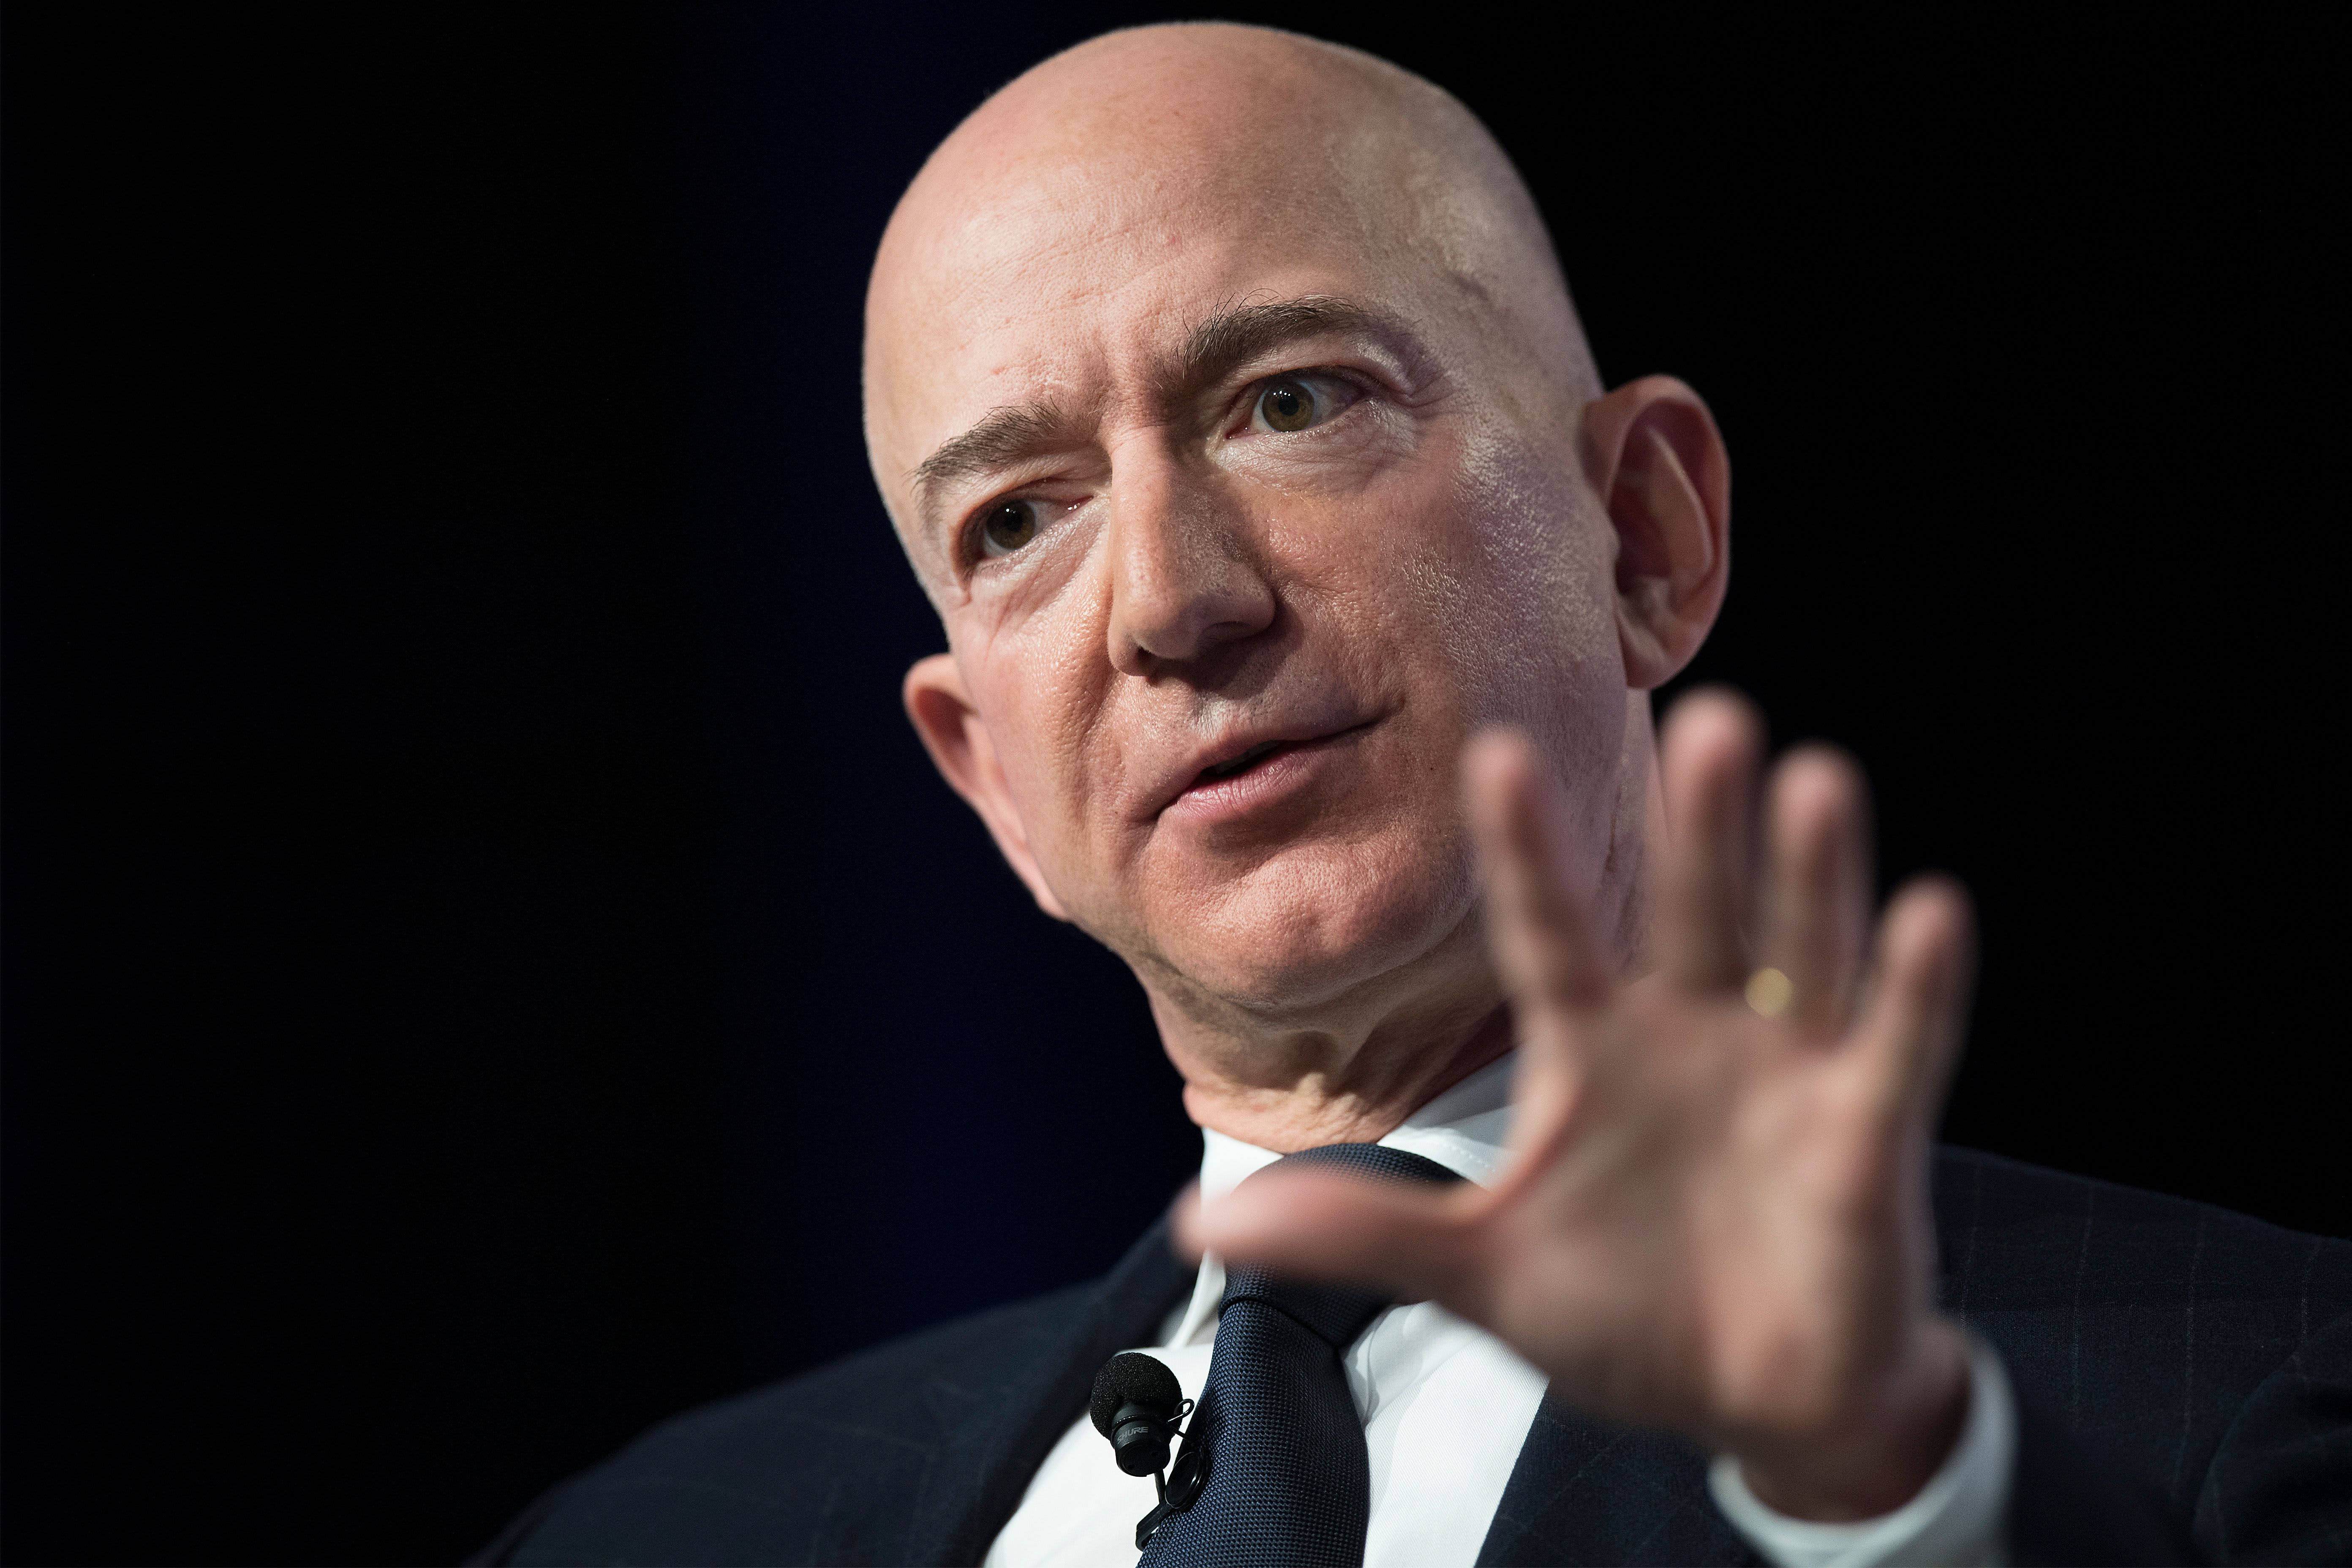 CEOs from Amazon, IBM, Salesforce and more ask Congress to pass a consumer data privacy law